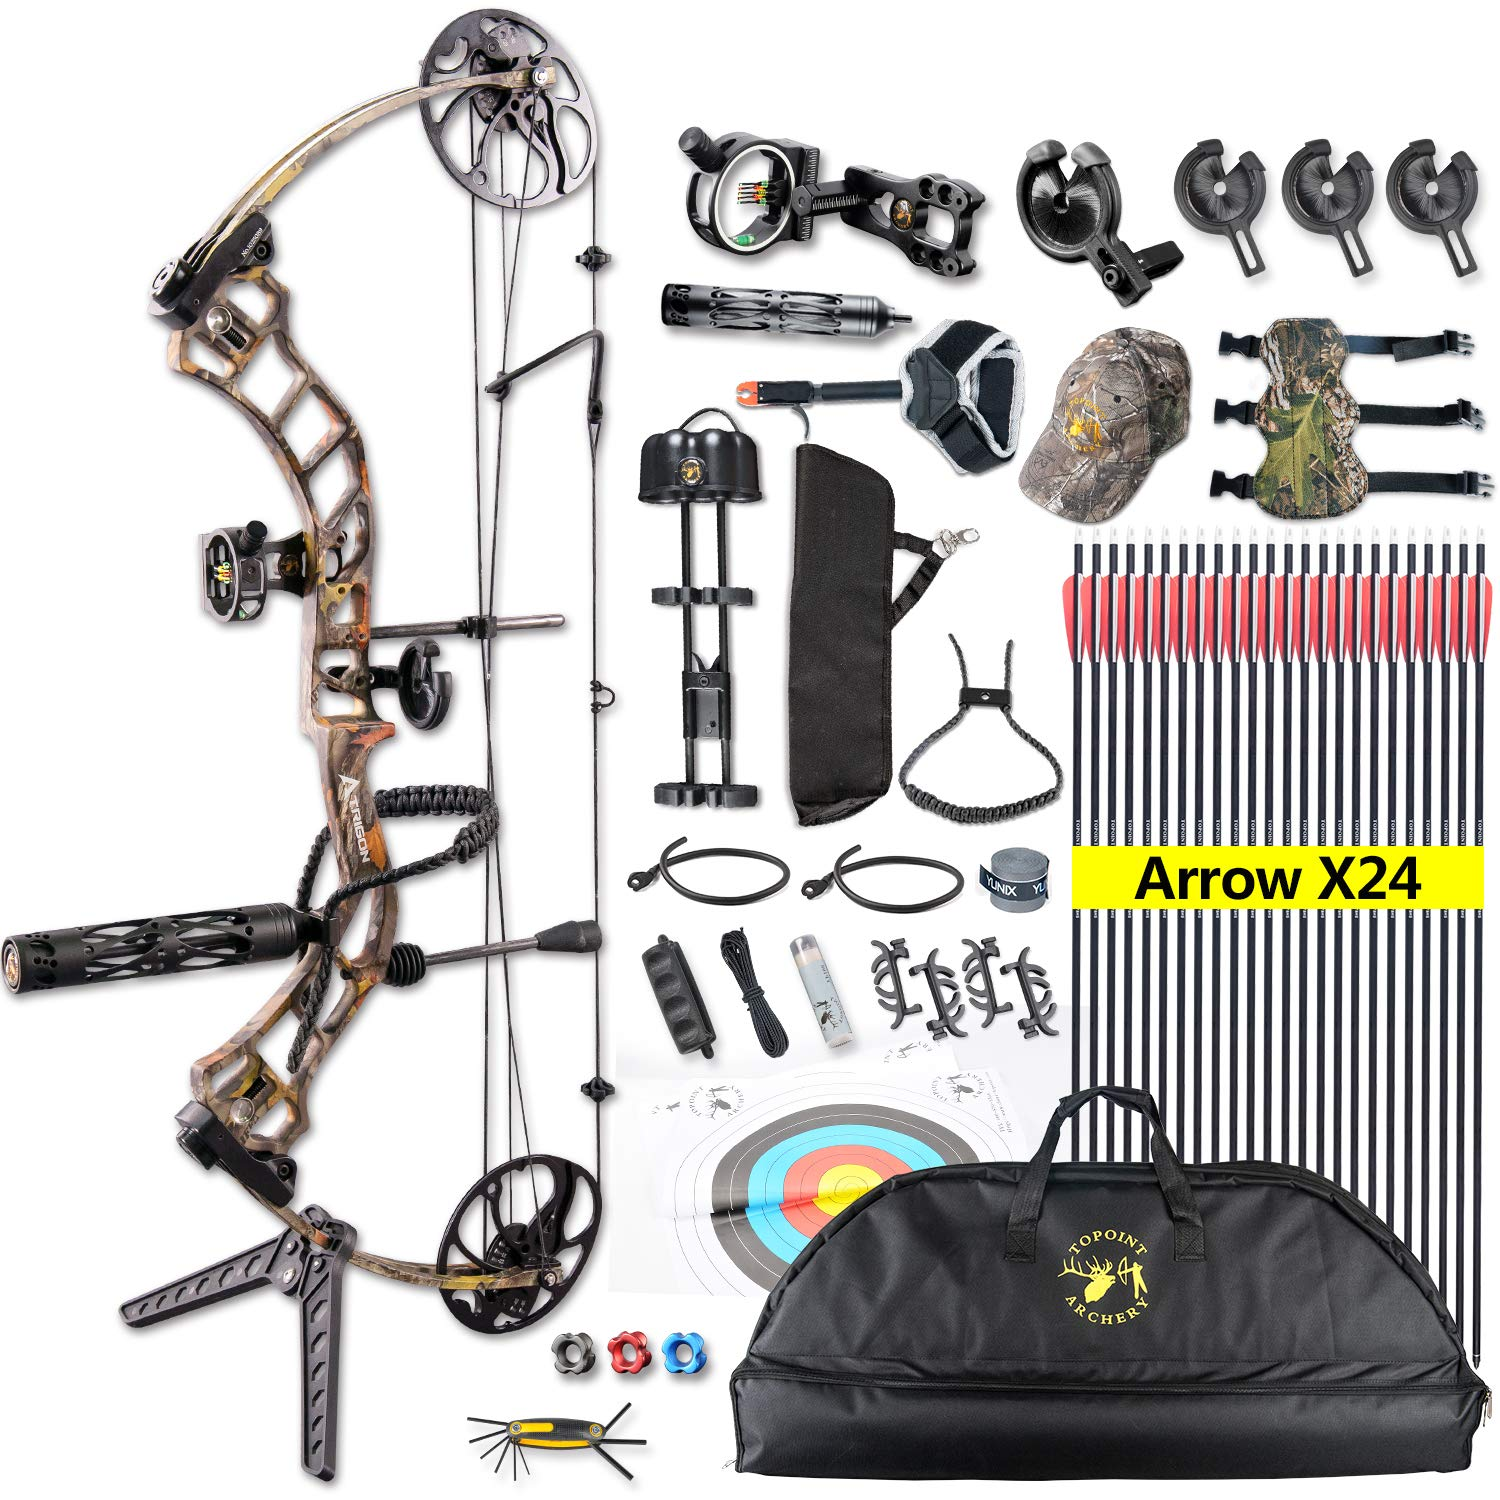 XGeek Compound Bow,with Hunting Accessories,CNC Milling Bow Riser,USA Gordon Composites Limb,BCY String,19''-30'' Draw Length,19-70Lbs Draw Weight,IBO 320fps (2 Years Warranty)